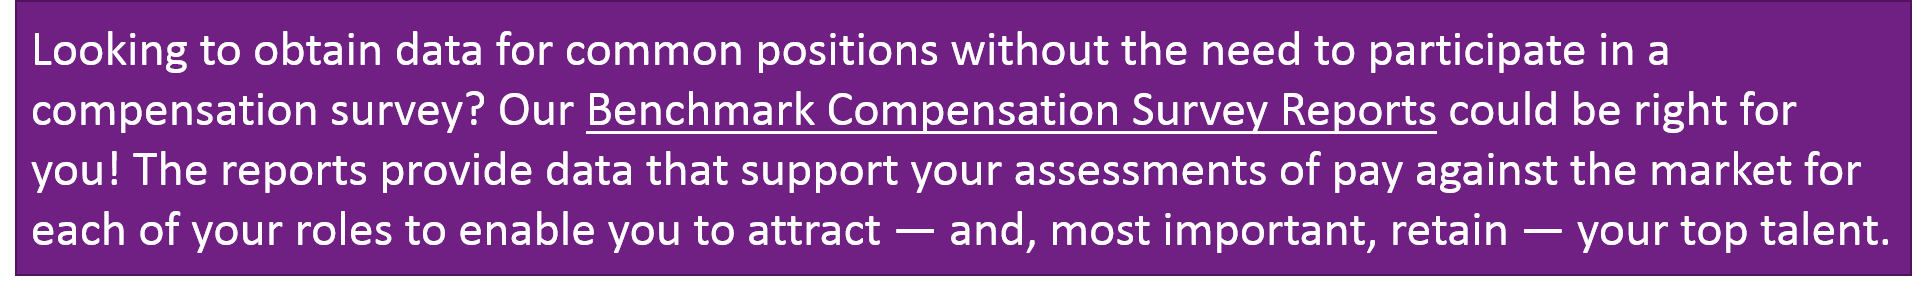 Benchmark Compensation Survey Reports CTA Image